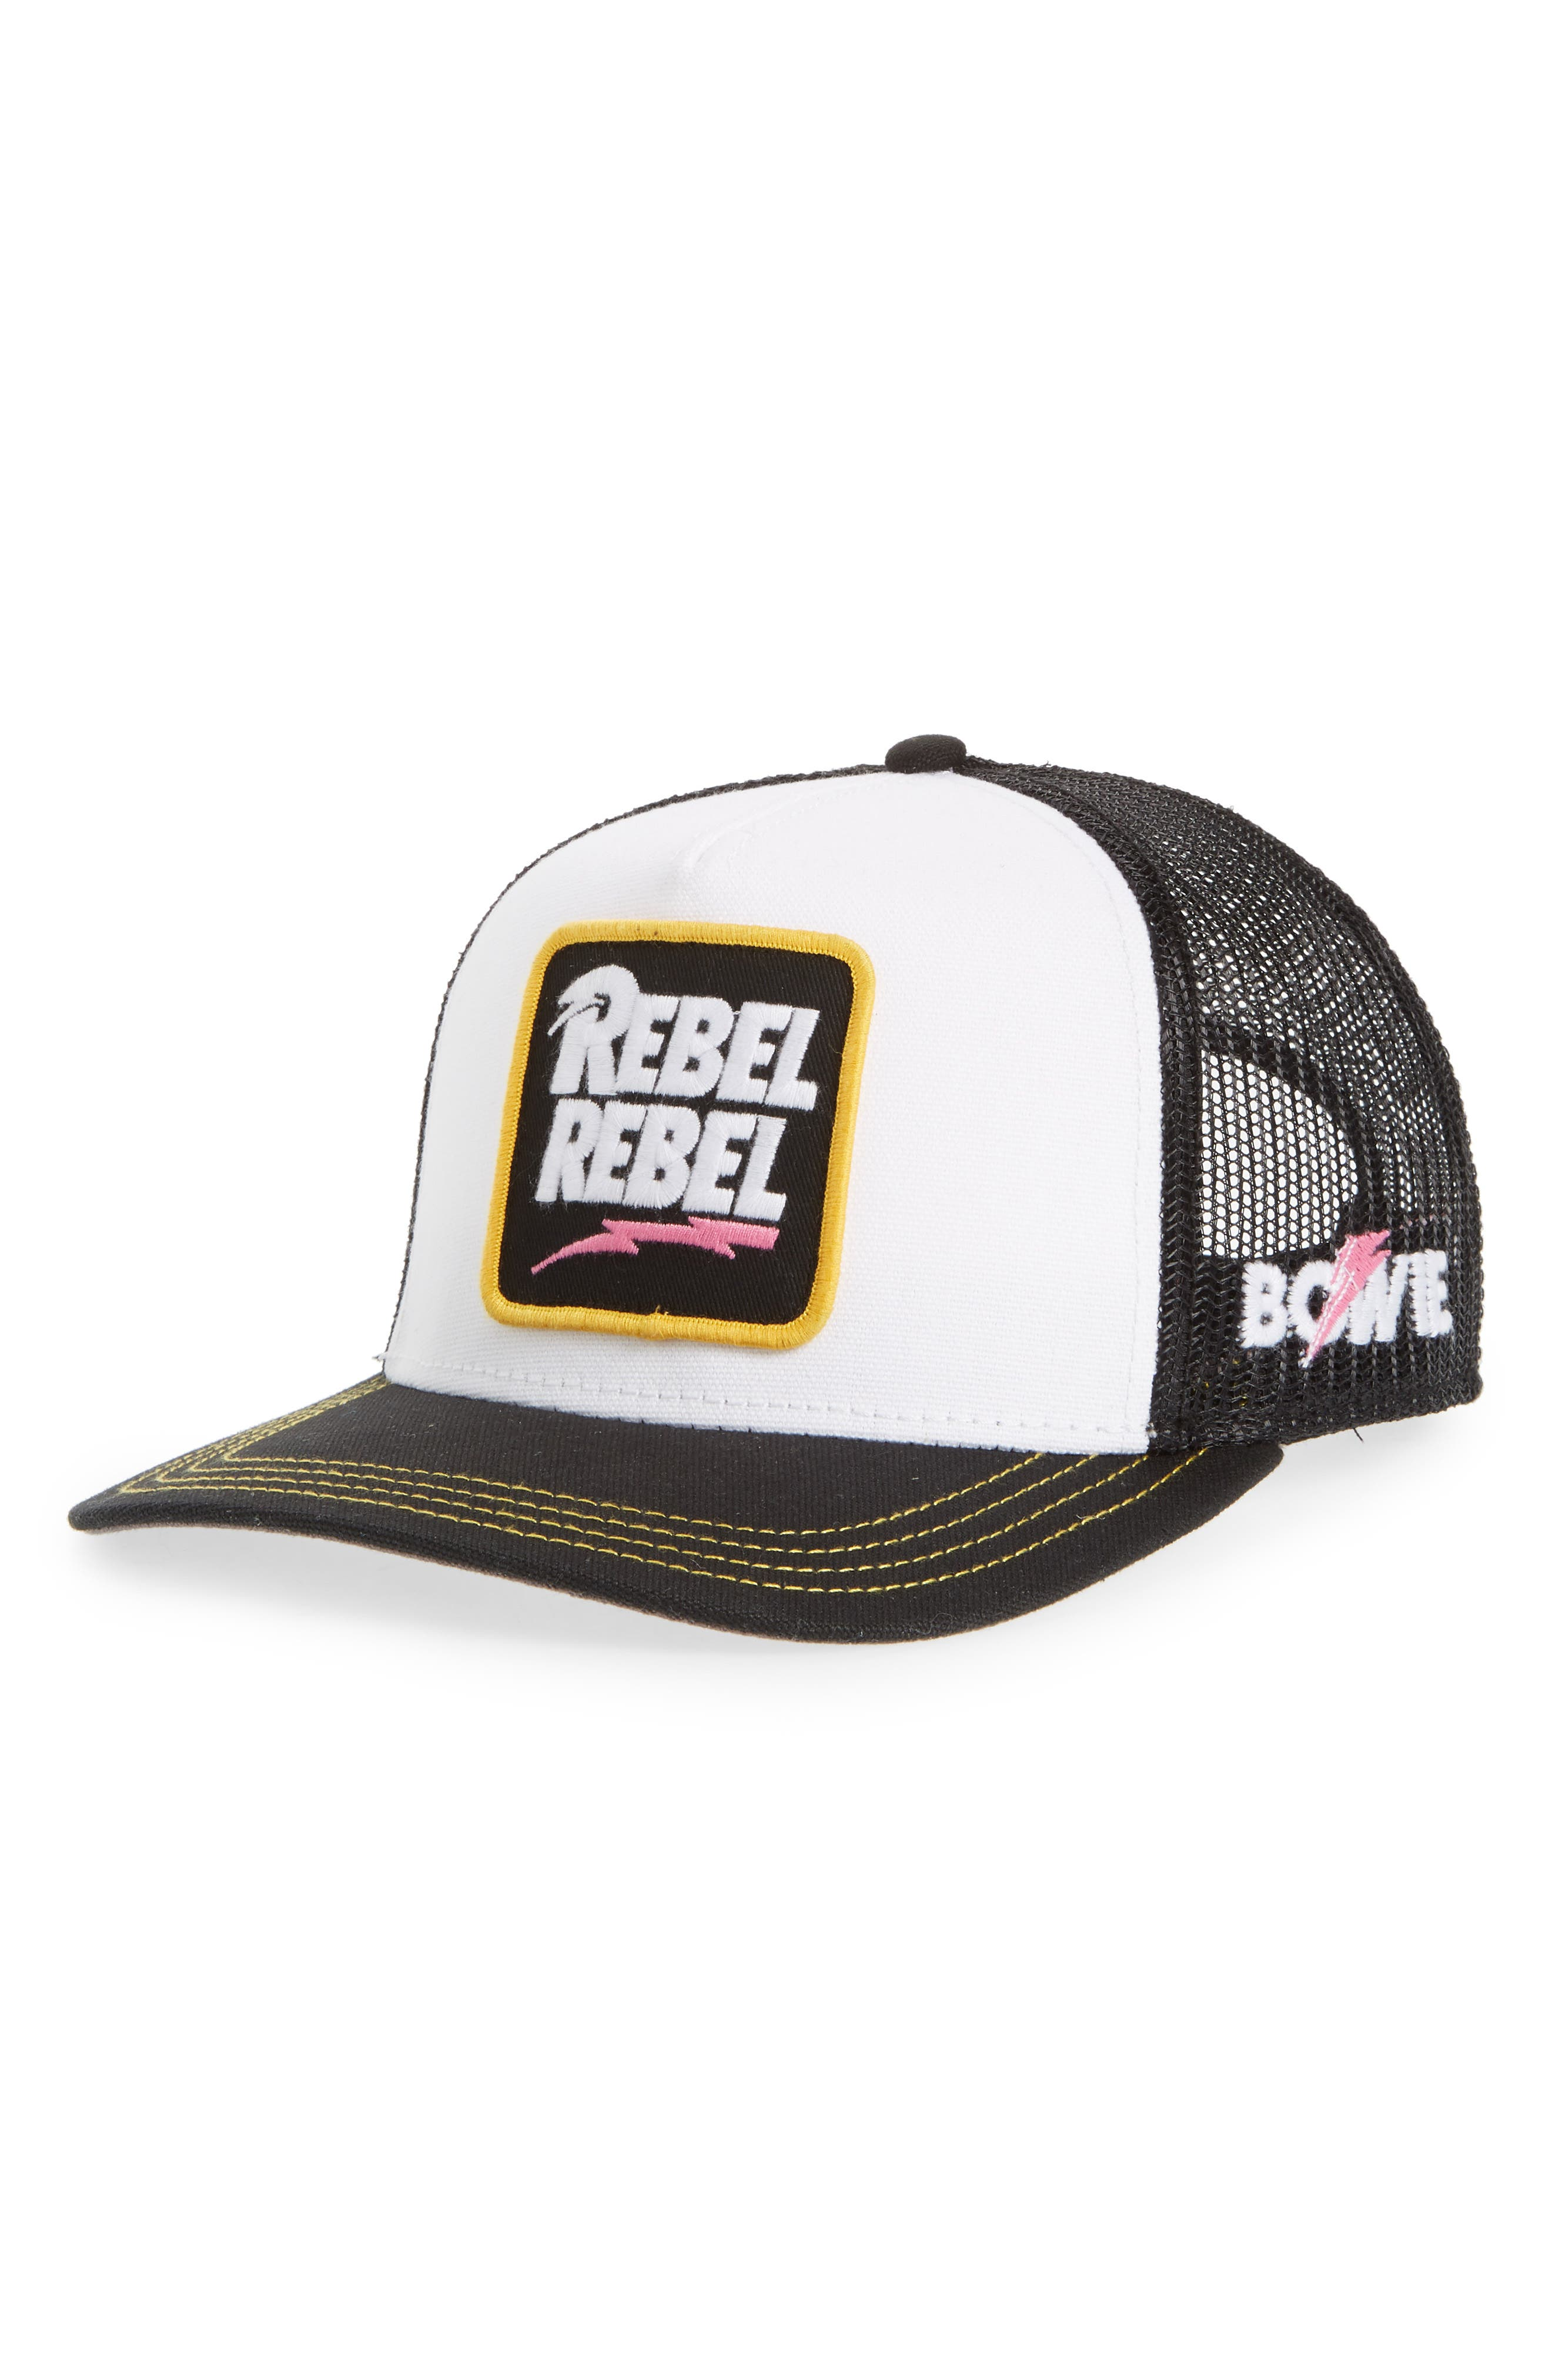 Valin Bowie Rebel Rebel Trucker Hat,                         Main,                         color, Black